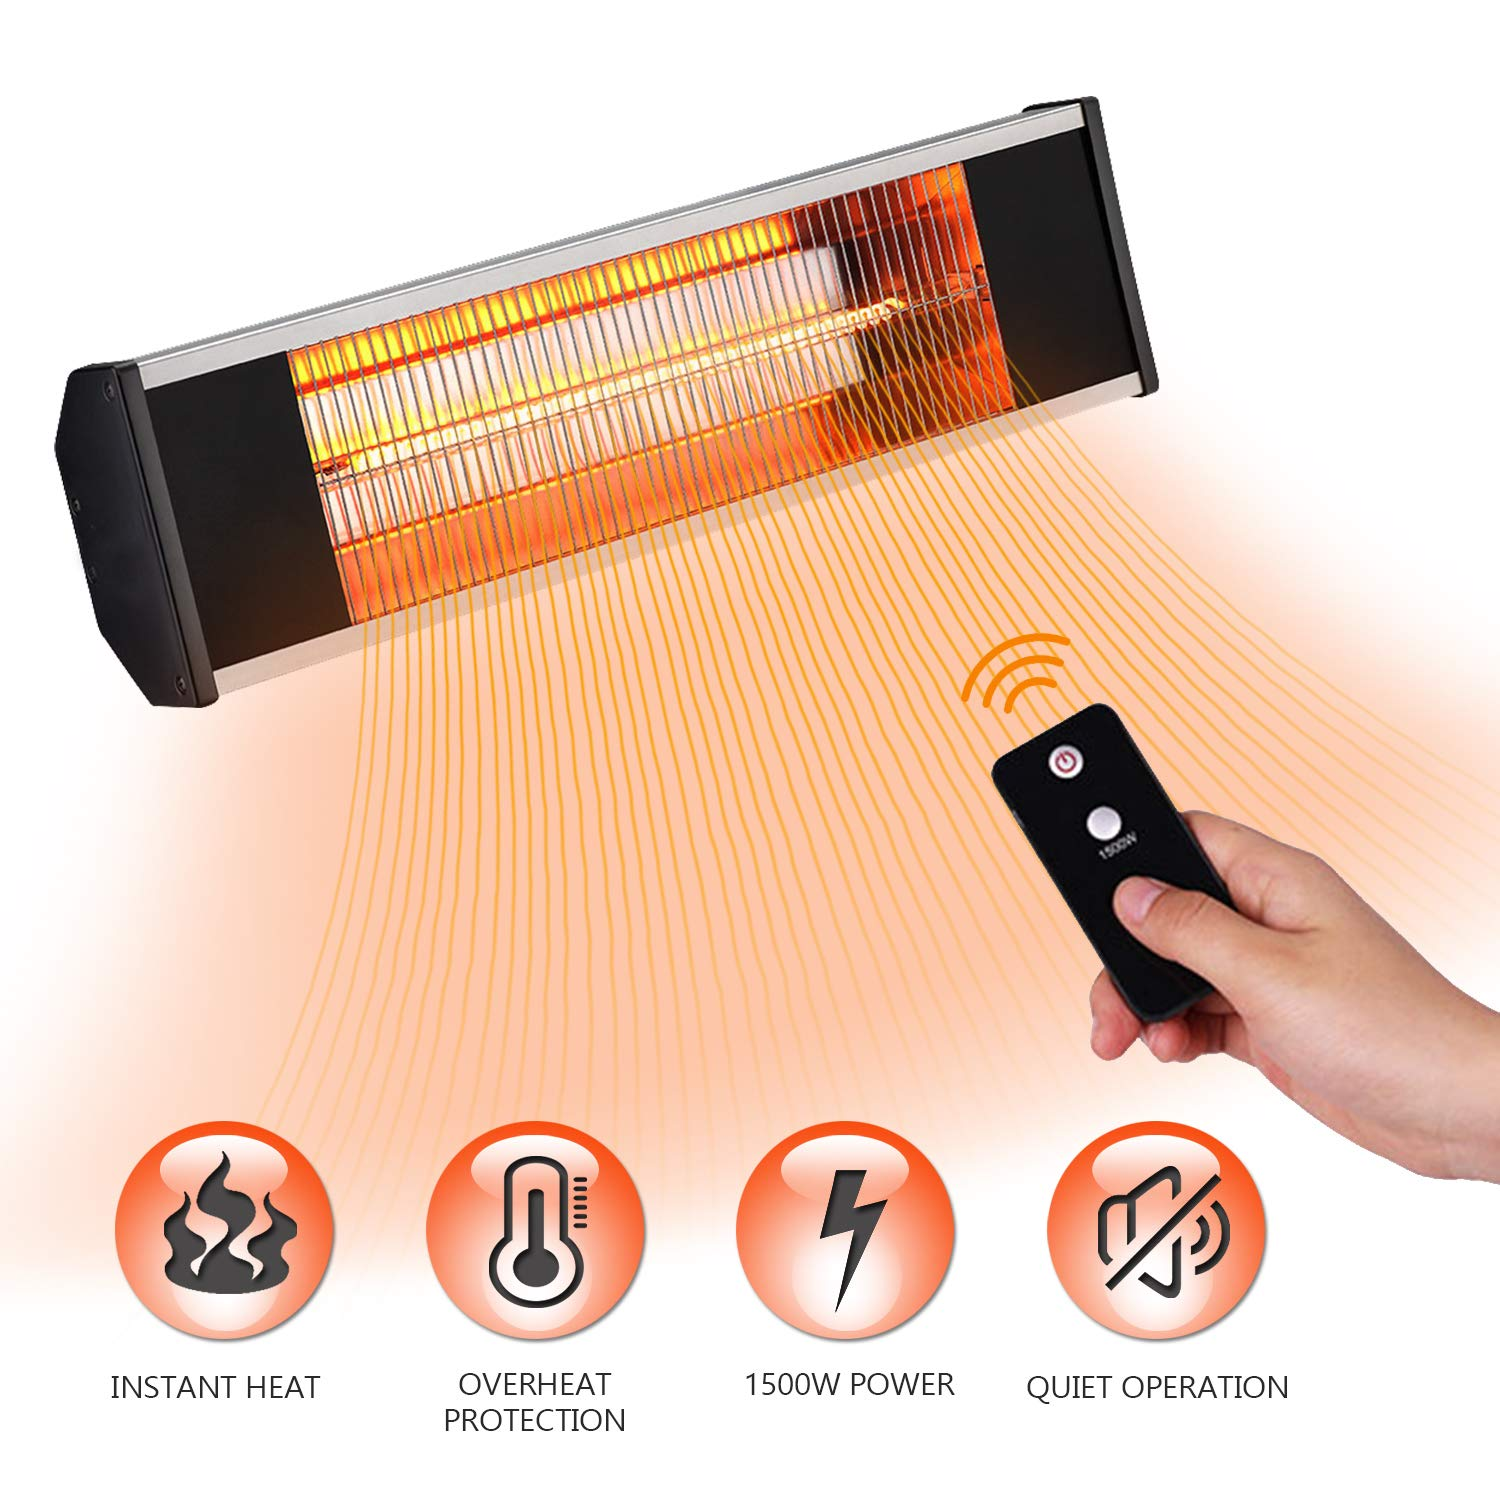 SURJUNY Electric Heater, Wall-Mounted Patio Heater with Remote Control, Waterproof Indoor/Outdoor Infrared Radiant Heater, 1500W by SURJUNY